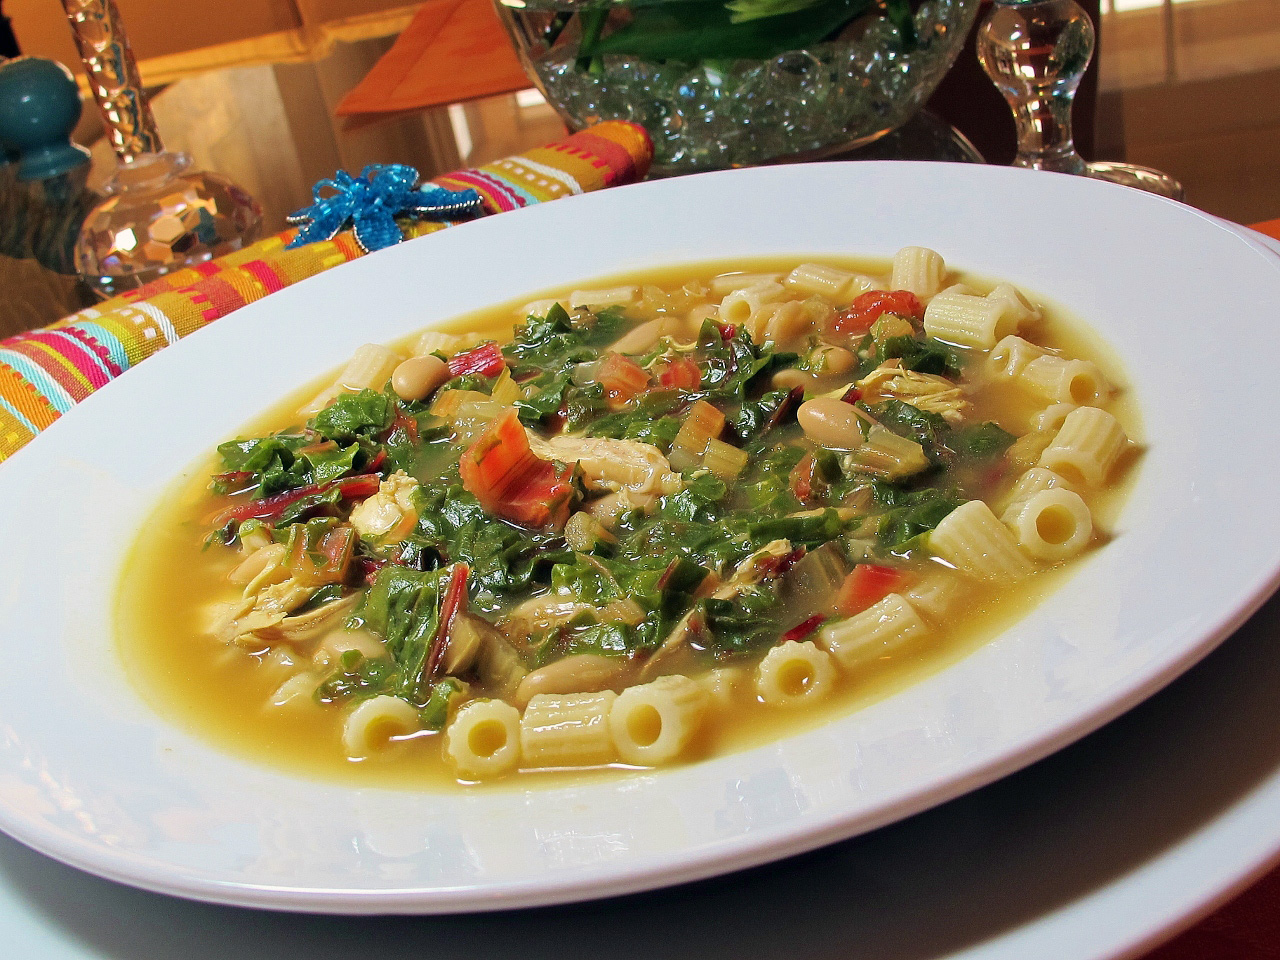 "This hearty soup features the classic Italian pairing of pasta and beans. Cannellini beans and ditalini pasta combine with baby spinach and lots of garlic. It's ready in less than an hour. ""A very yummy soup,"" says WIFE2SP. ""Filling and comforting. I didn't drain the beans because I like the thickness the liquid gives the soup."""